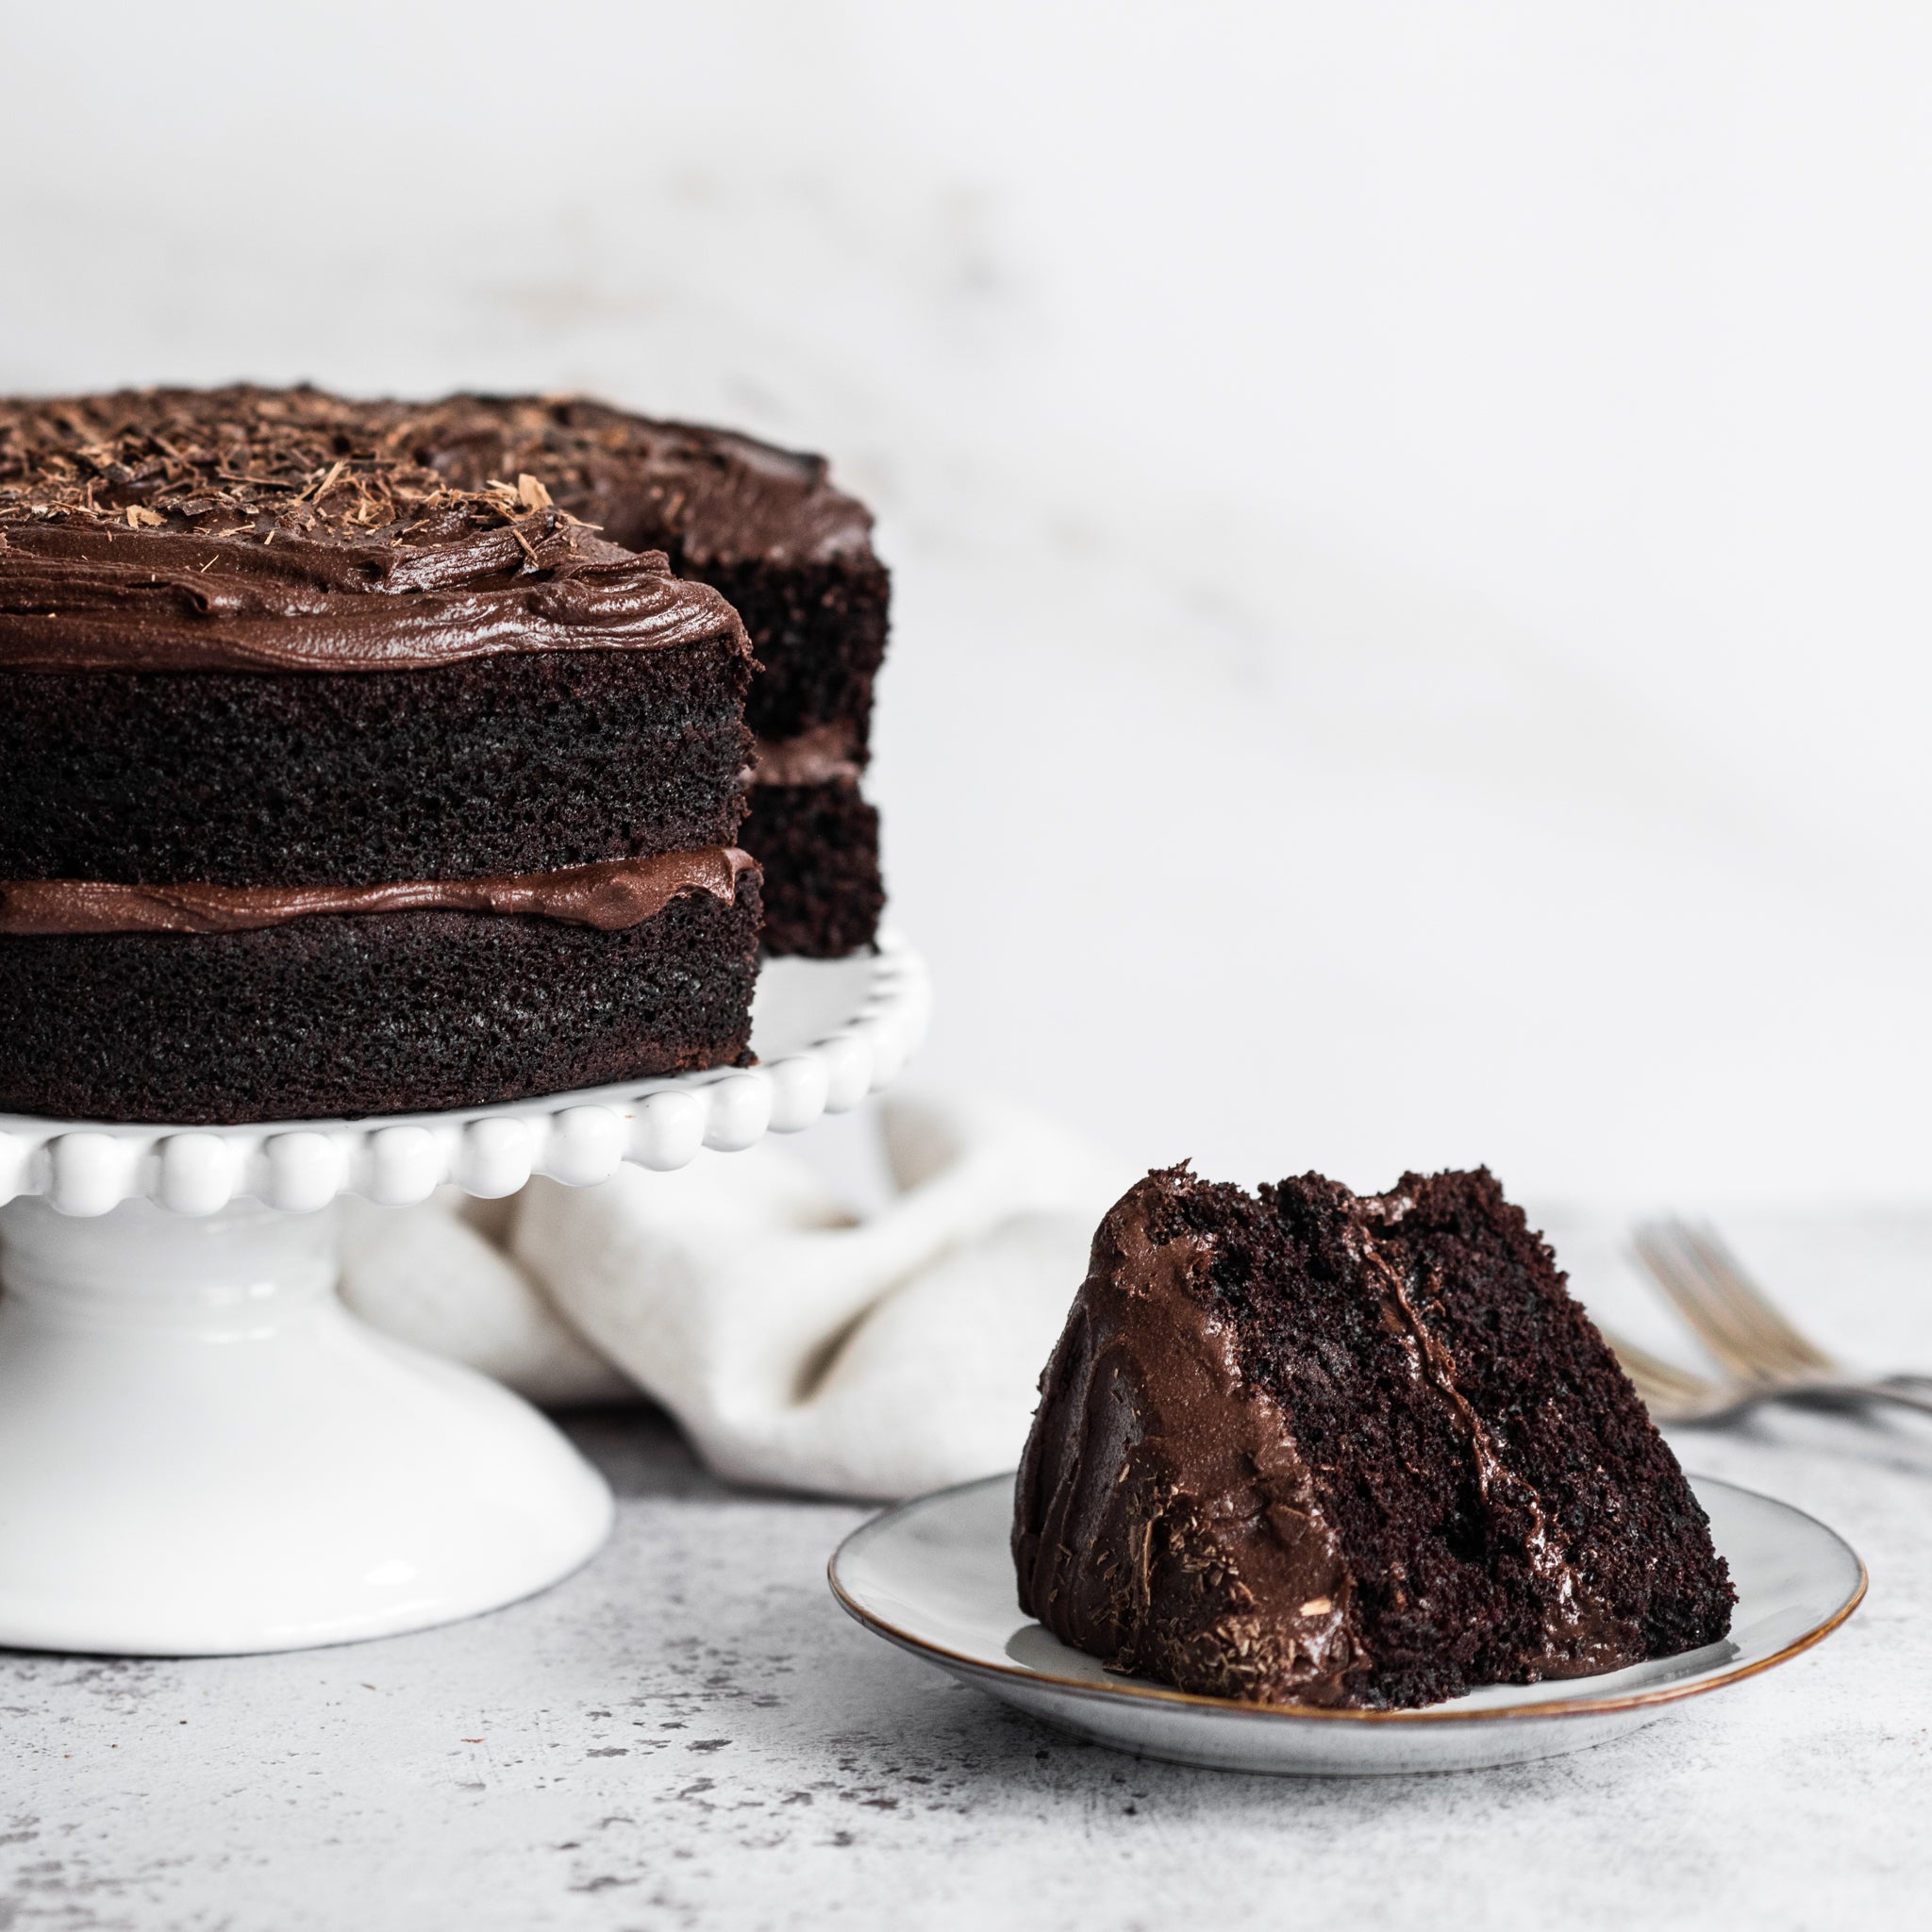 Vegan-Chocolate-Cake-SQUARE-4.jpg